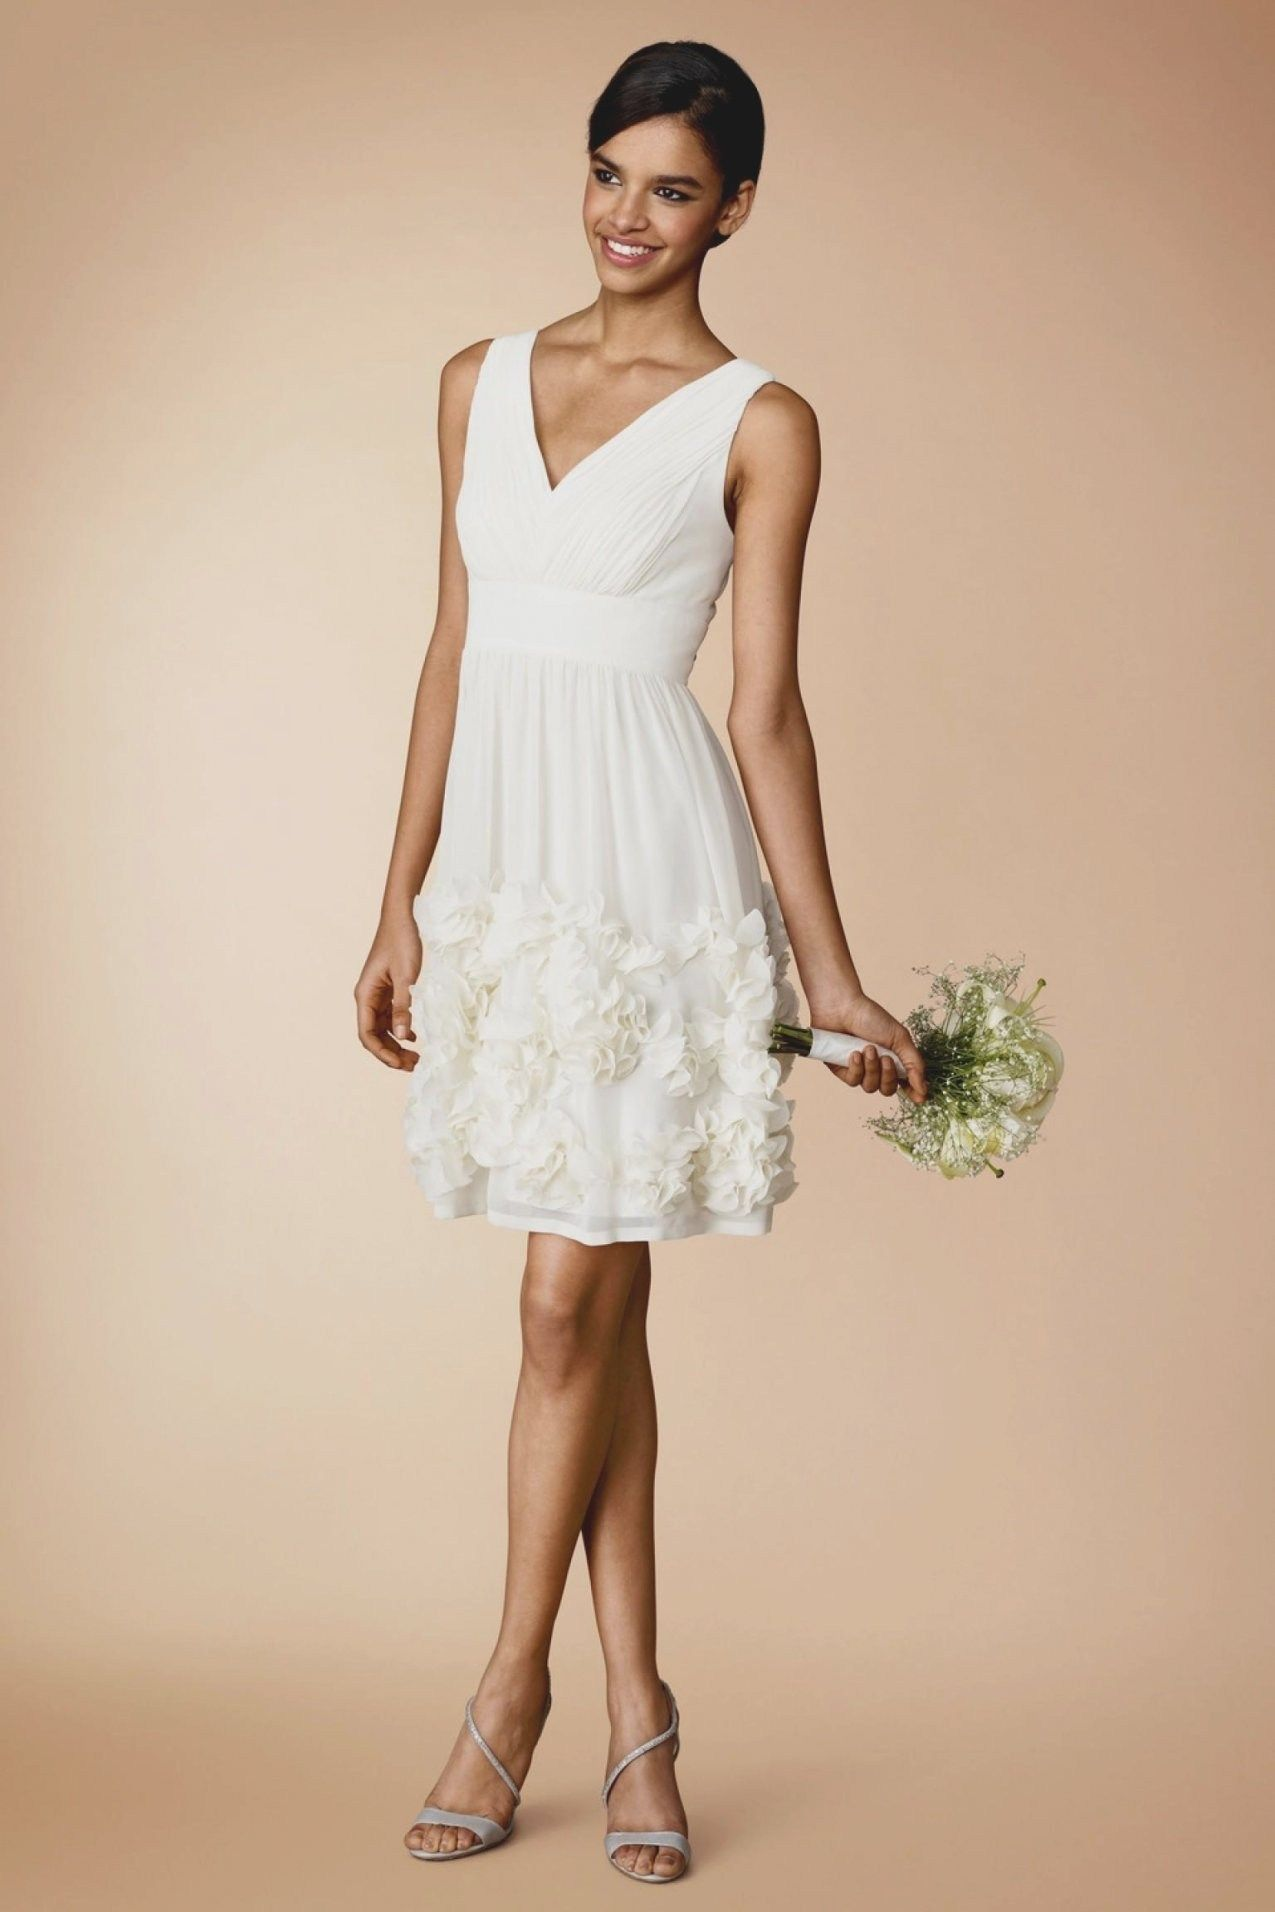 Simple White Dress For Courthouse Wedding Naf Dresses In